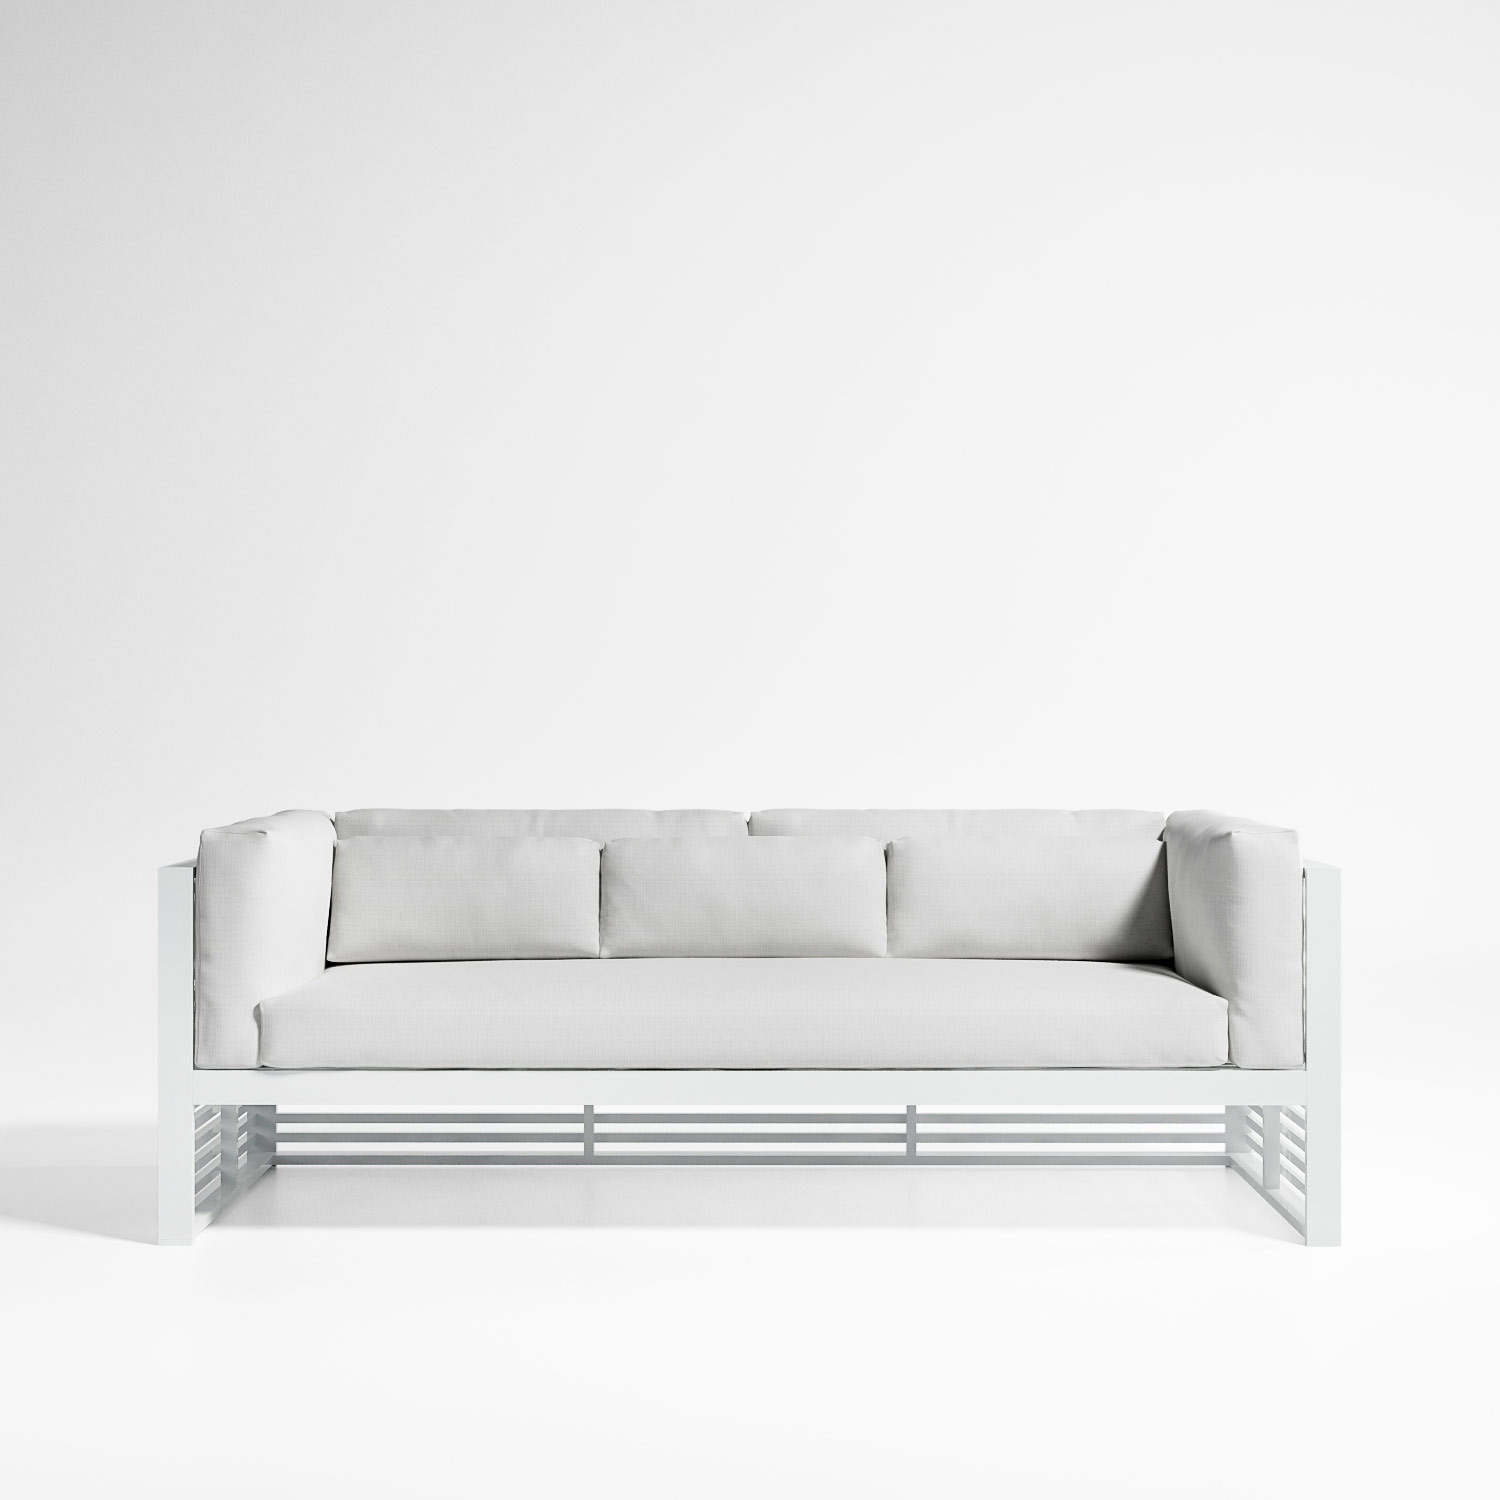 DNA Sofa 3 Personer Cover